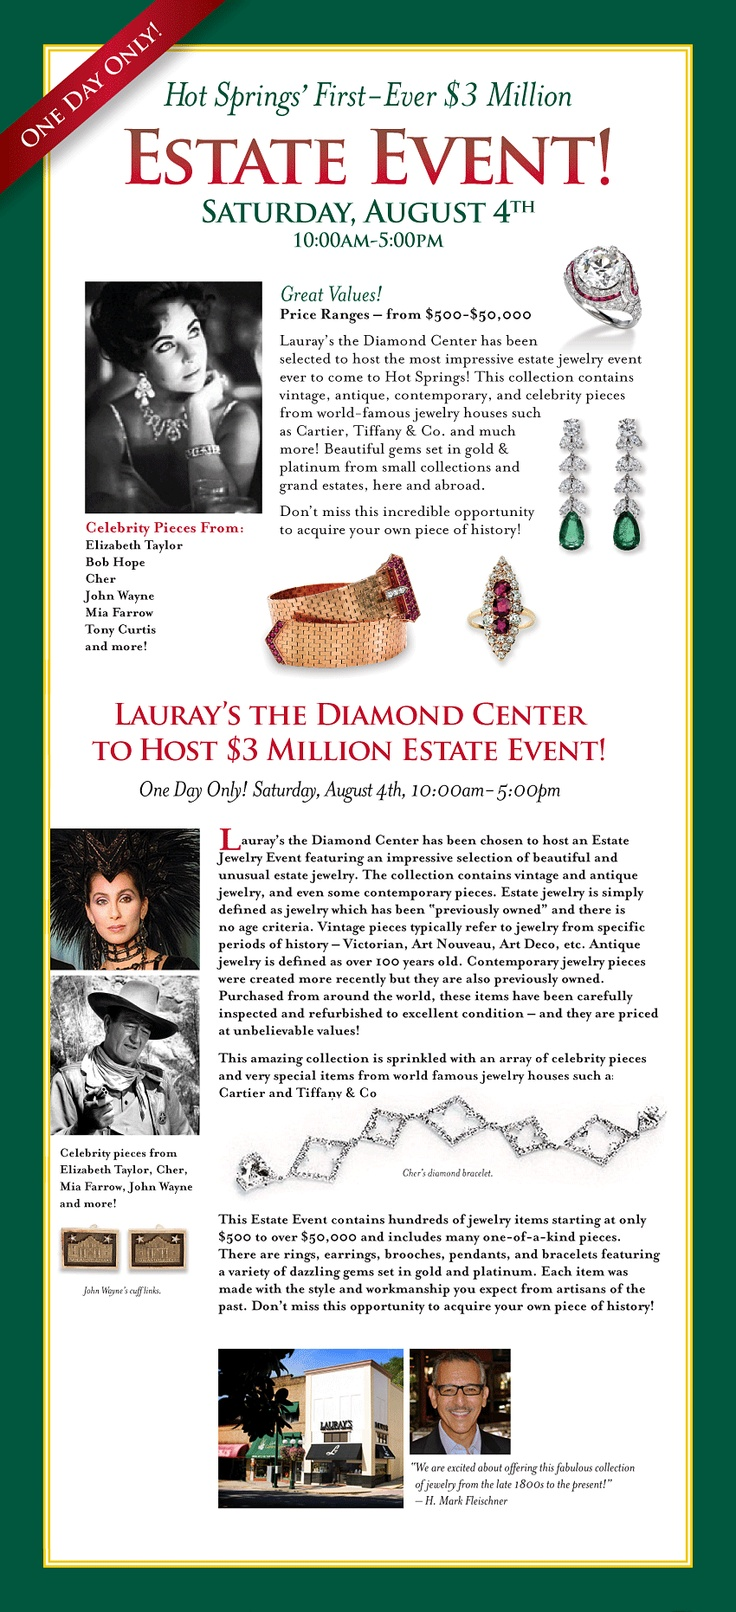 This sounds amazing!!!  Jewelry from Elizabeth Taylor's collection!  And Cher's!  Lauray's the Diamond Center has been selected to host the most impressive estate jewelry event ever to come to Hot Springs!  Don't miss this event!  Saturday, August 4th - 10am - 5pm!